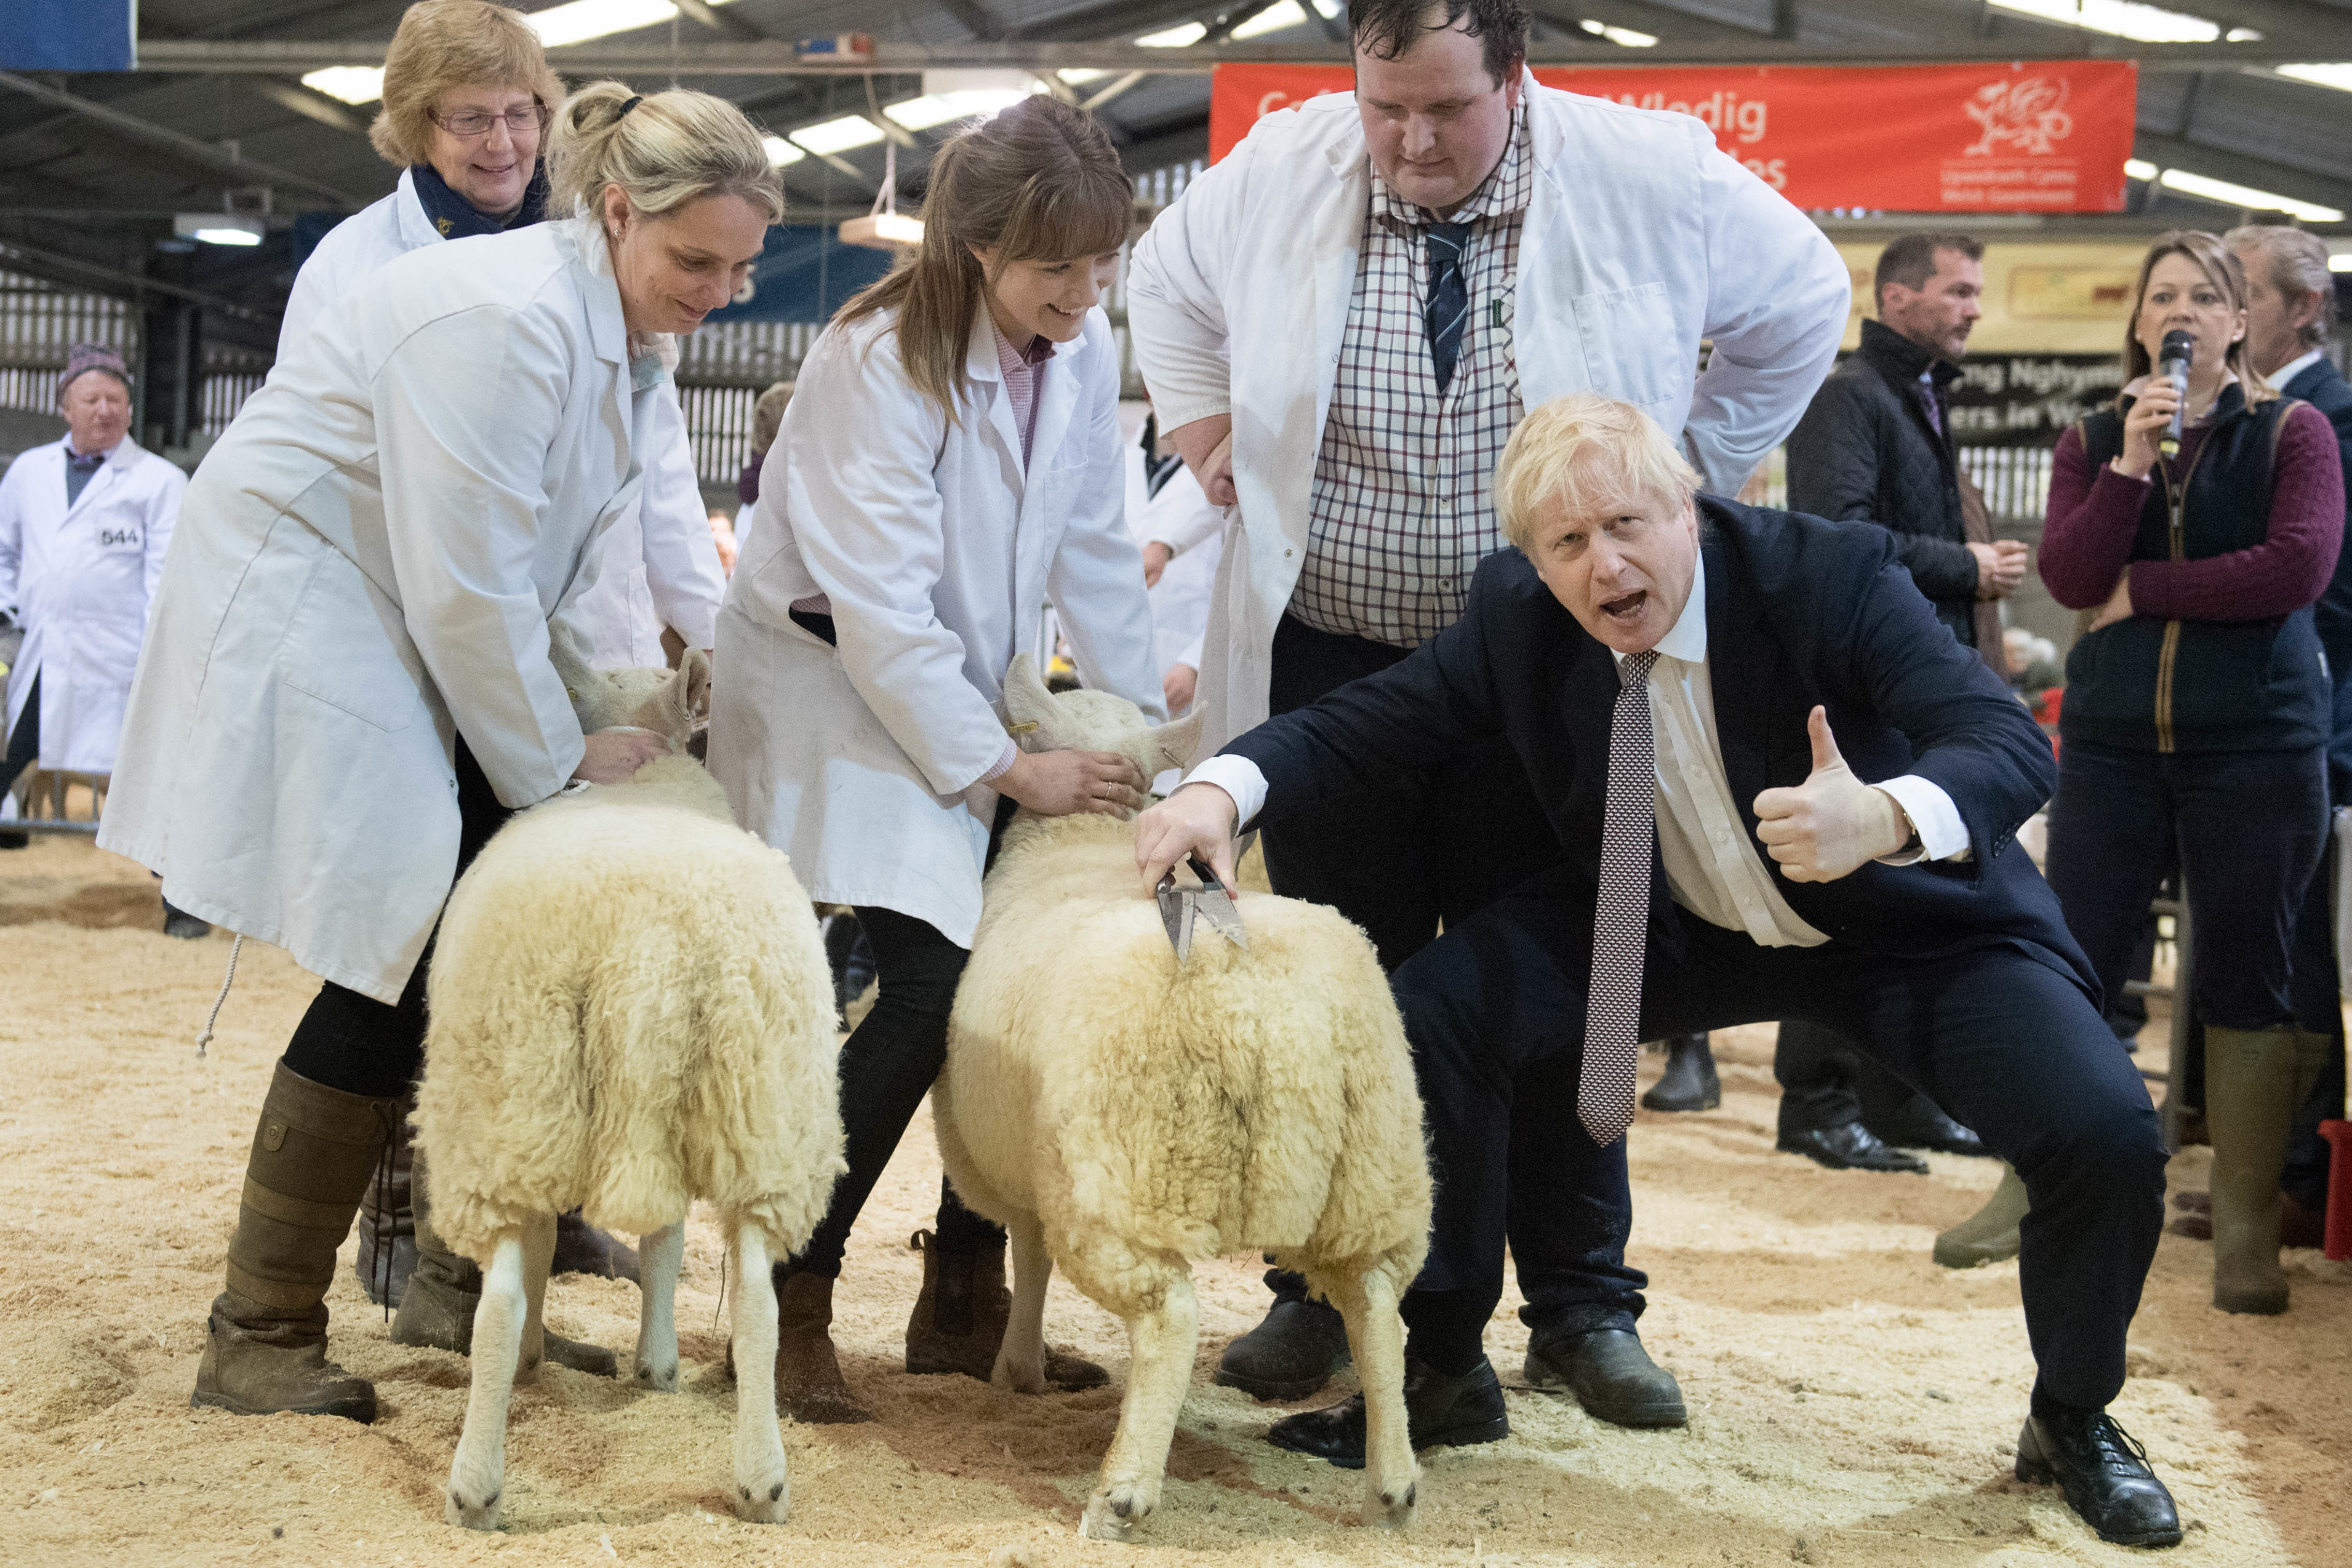 Prime Minister Boris Johnson, visits the Royal Welsh Showground, in Llanelwedd, Builth Wells whilst on the General Election campaign trail. PA Photo. Picture date: Monday November 25, 2019. See PA story POLITICS Election. Photo credit should read: Stefan Rousseau/PA Wire